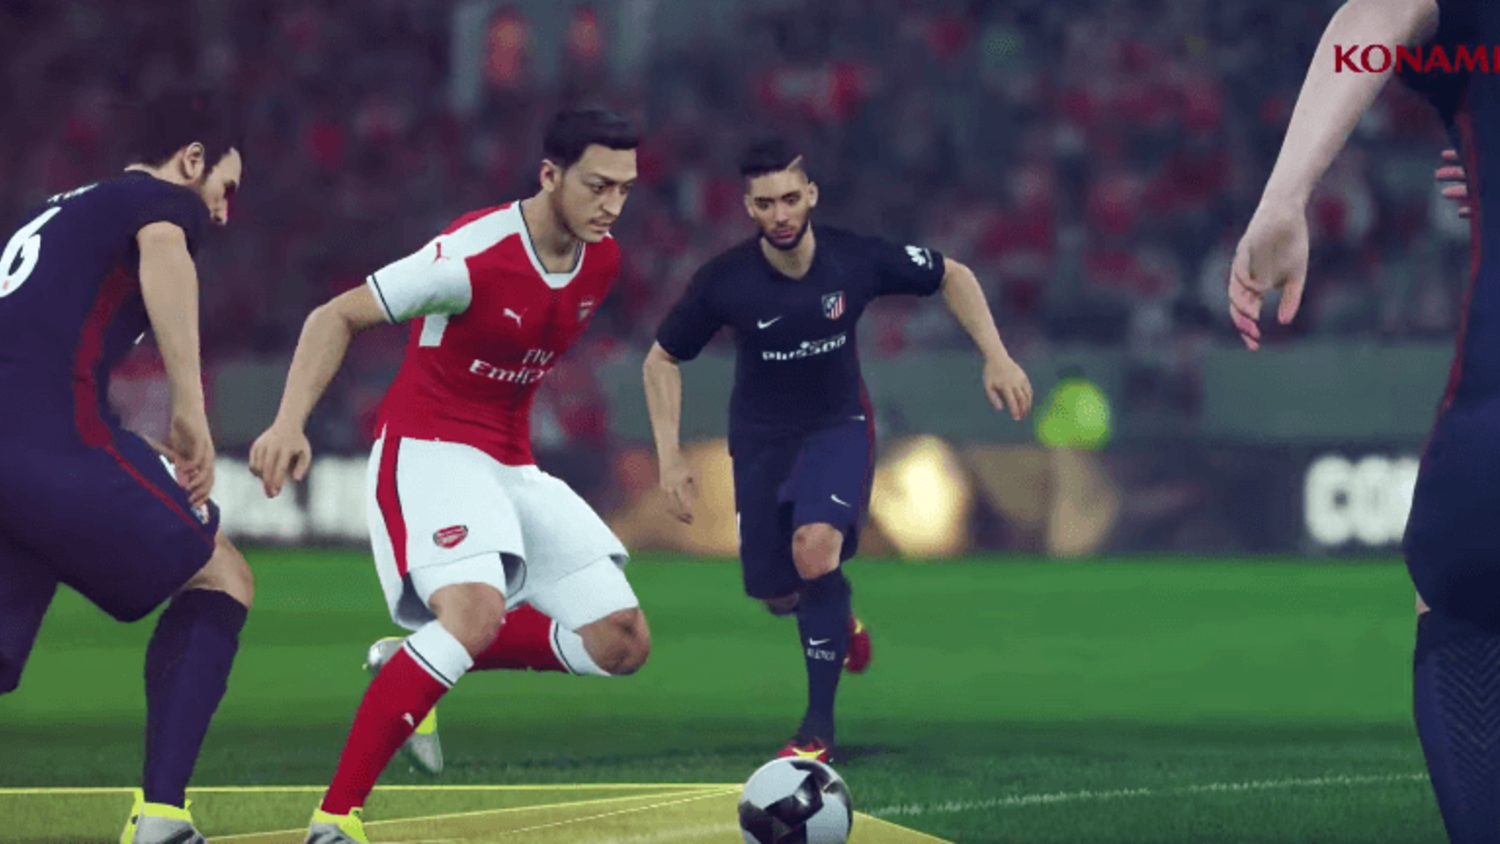 PES 2017 'Control Reality' Teaser Trailer Revealed at E3